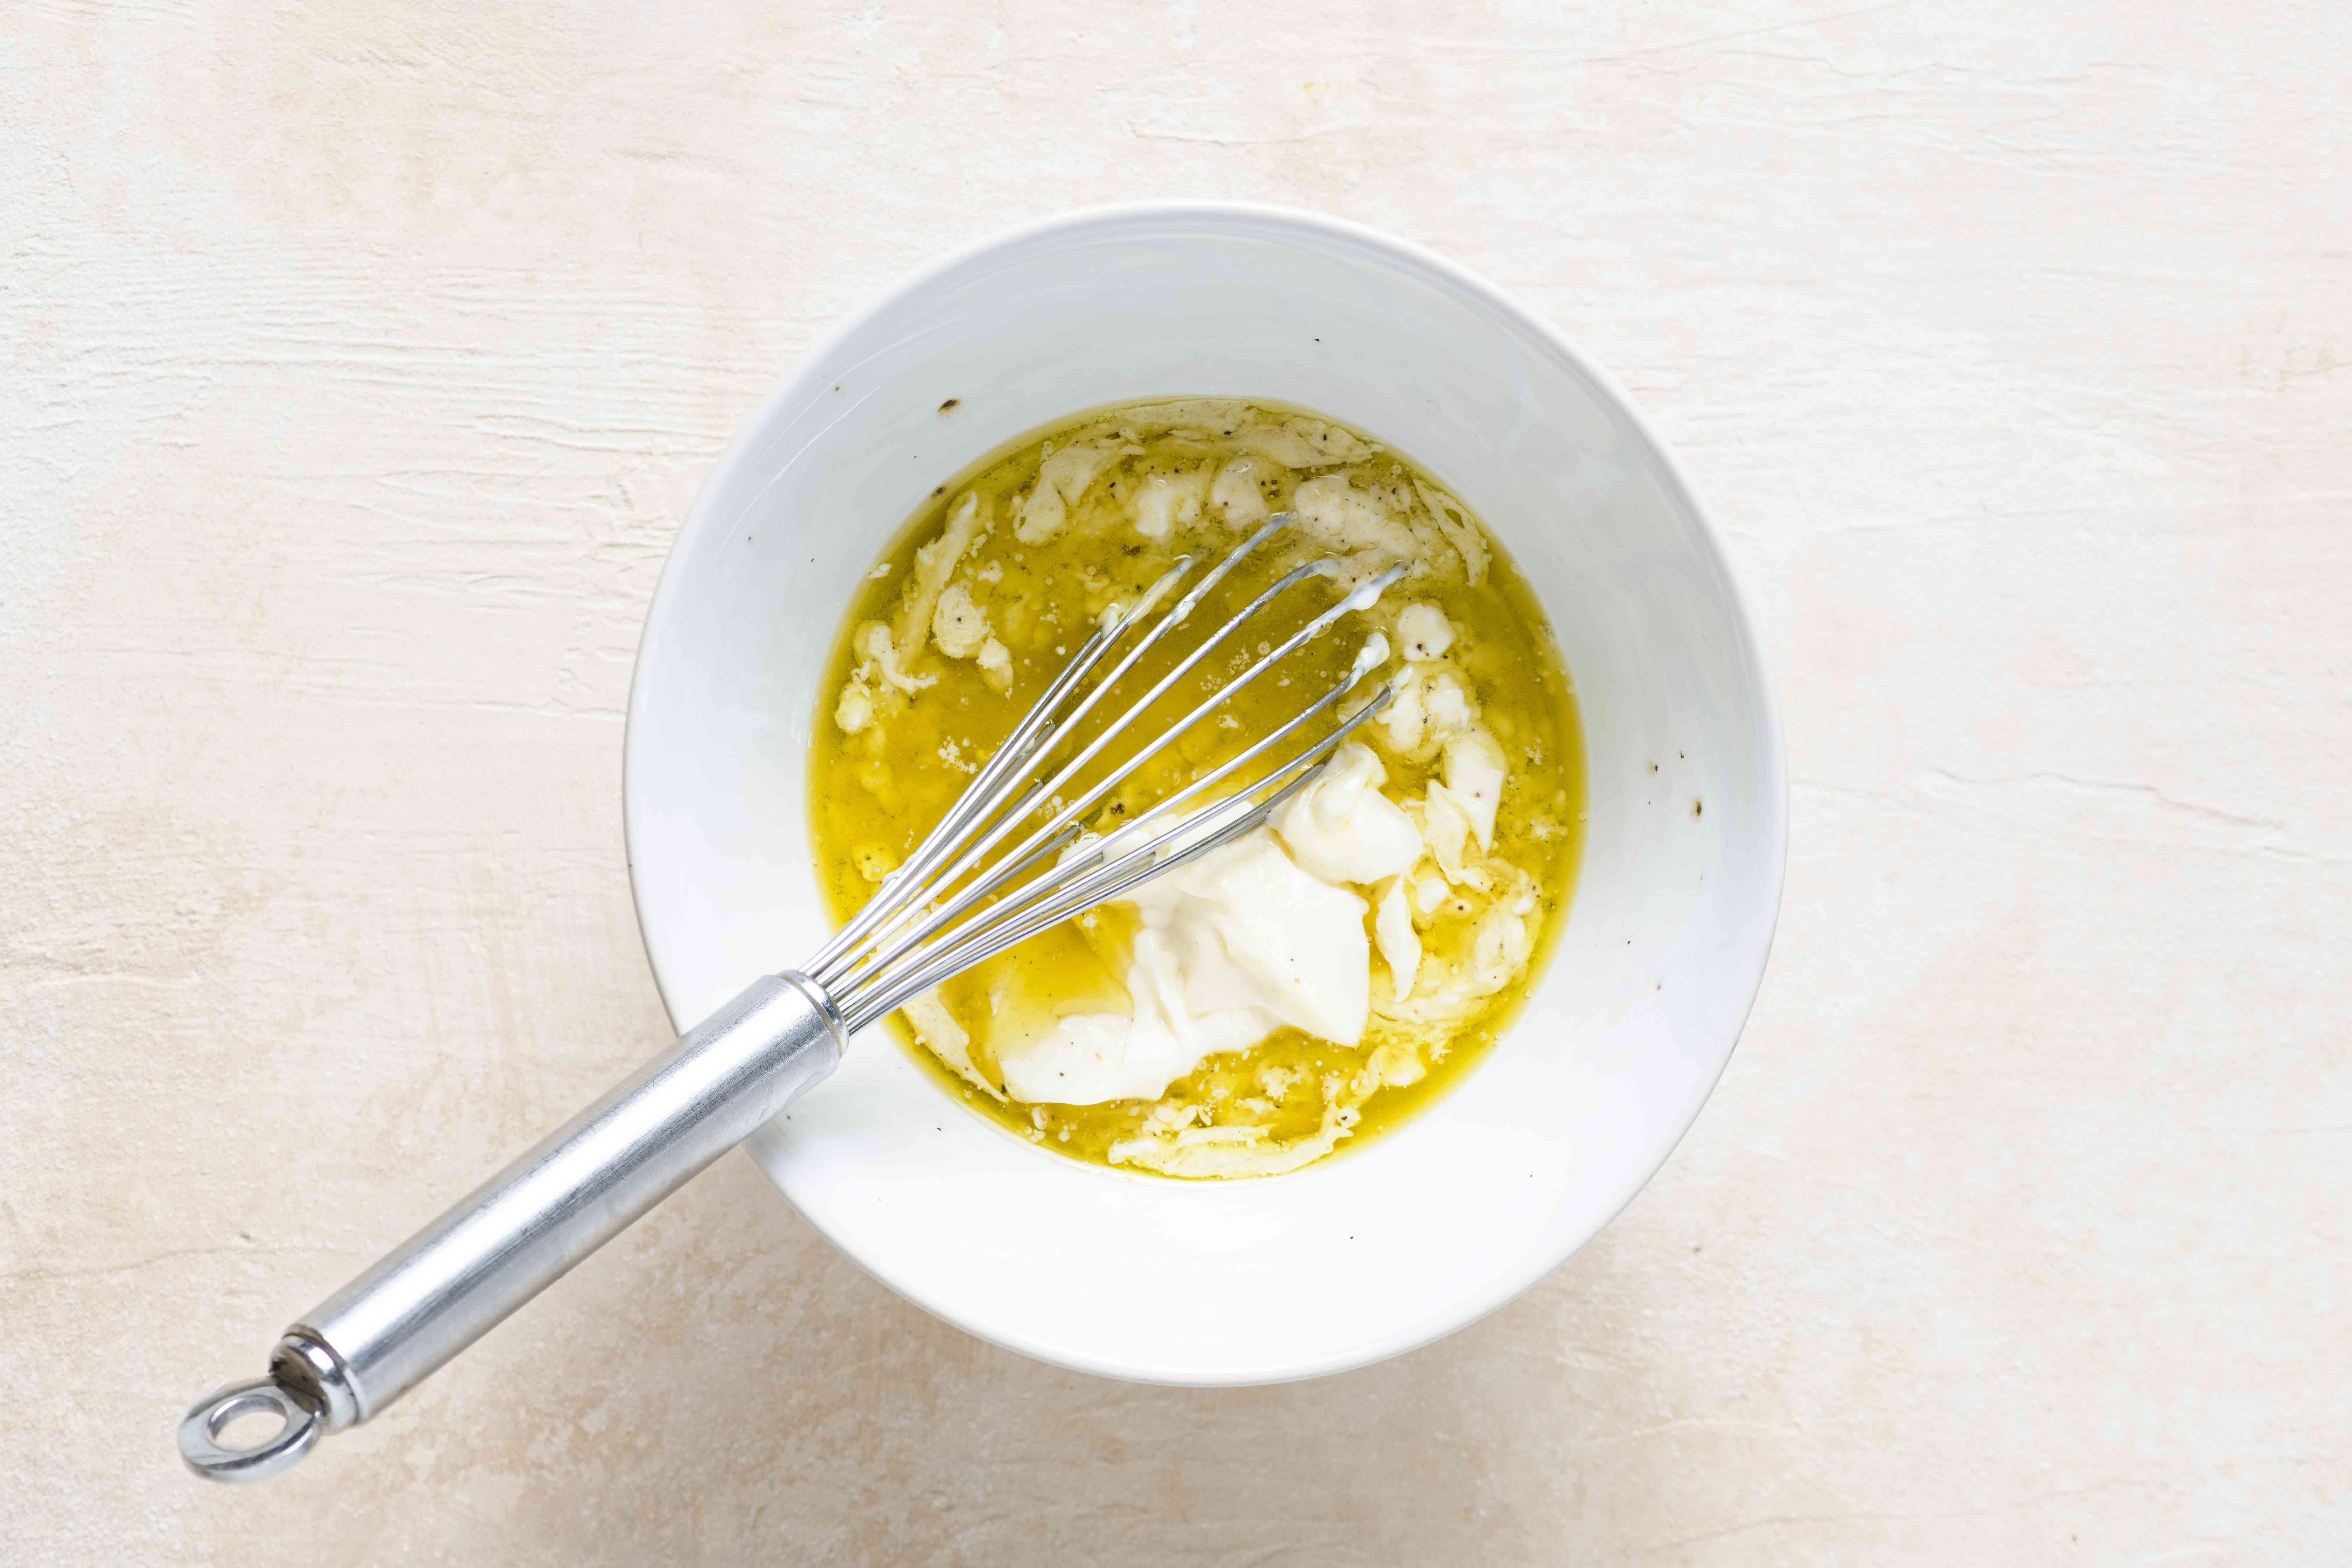 mayonnaise, olive oil, vinegar, mustard, salt and pepper in a bowl